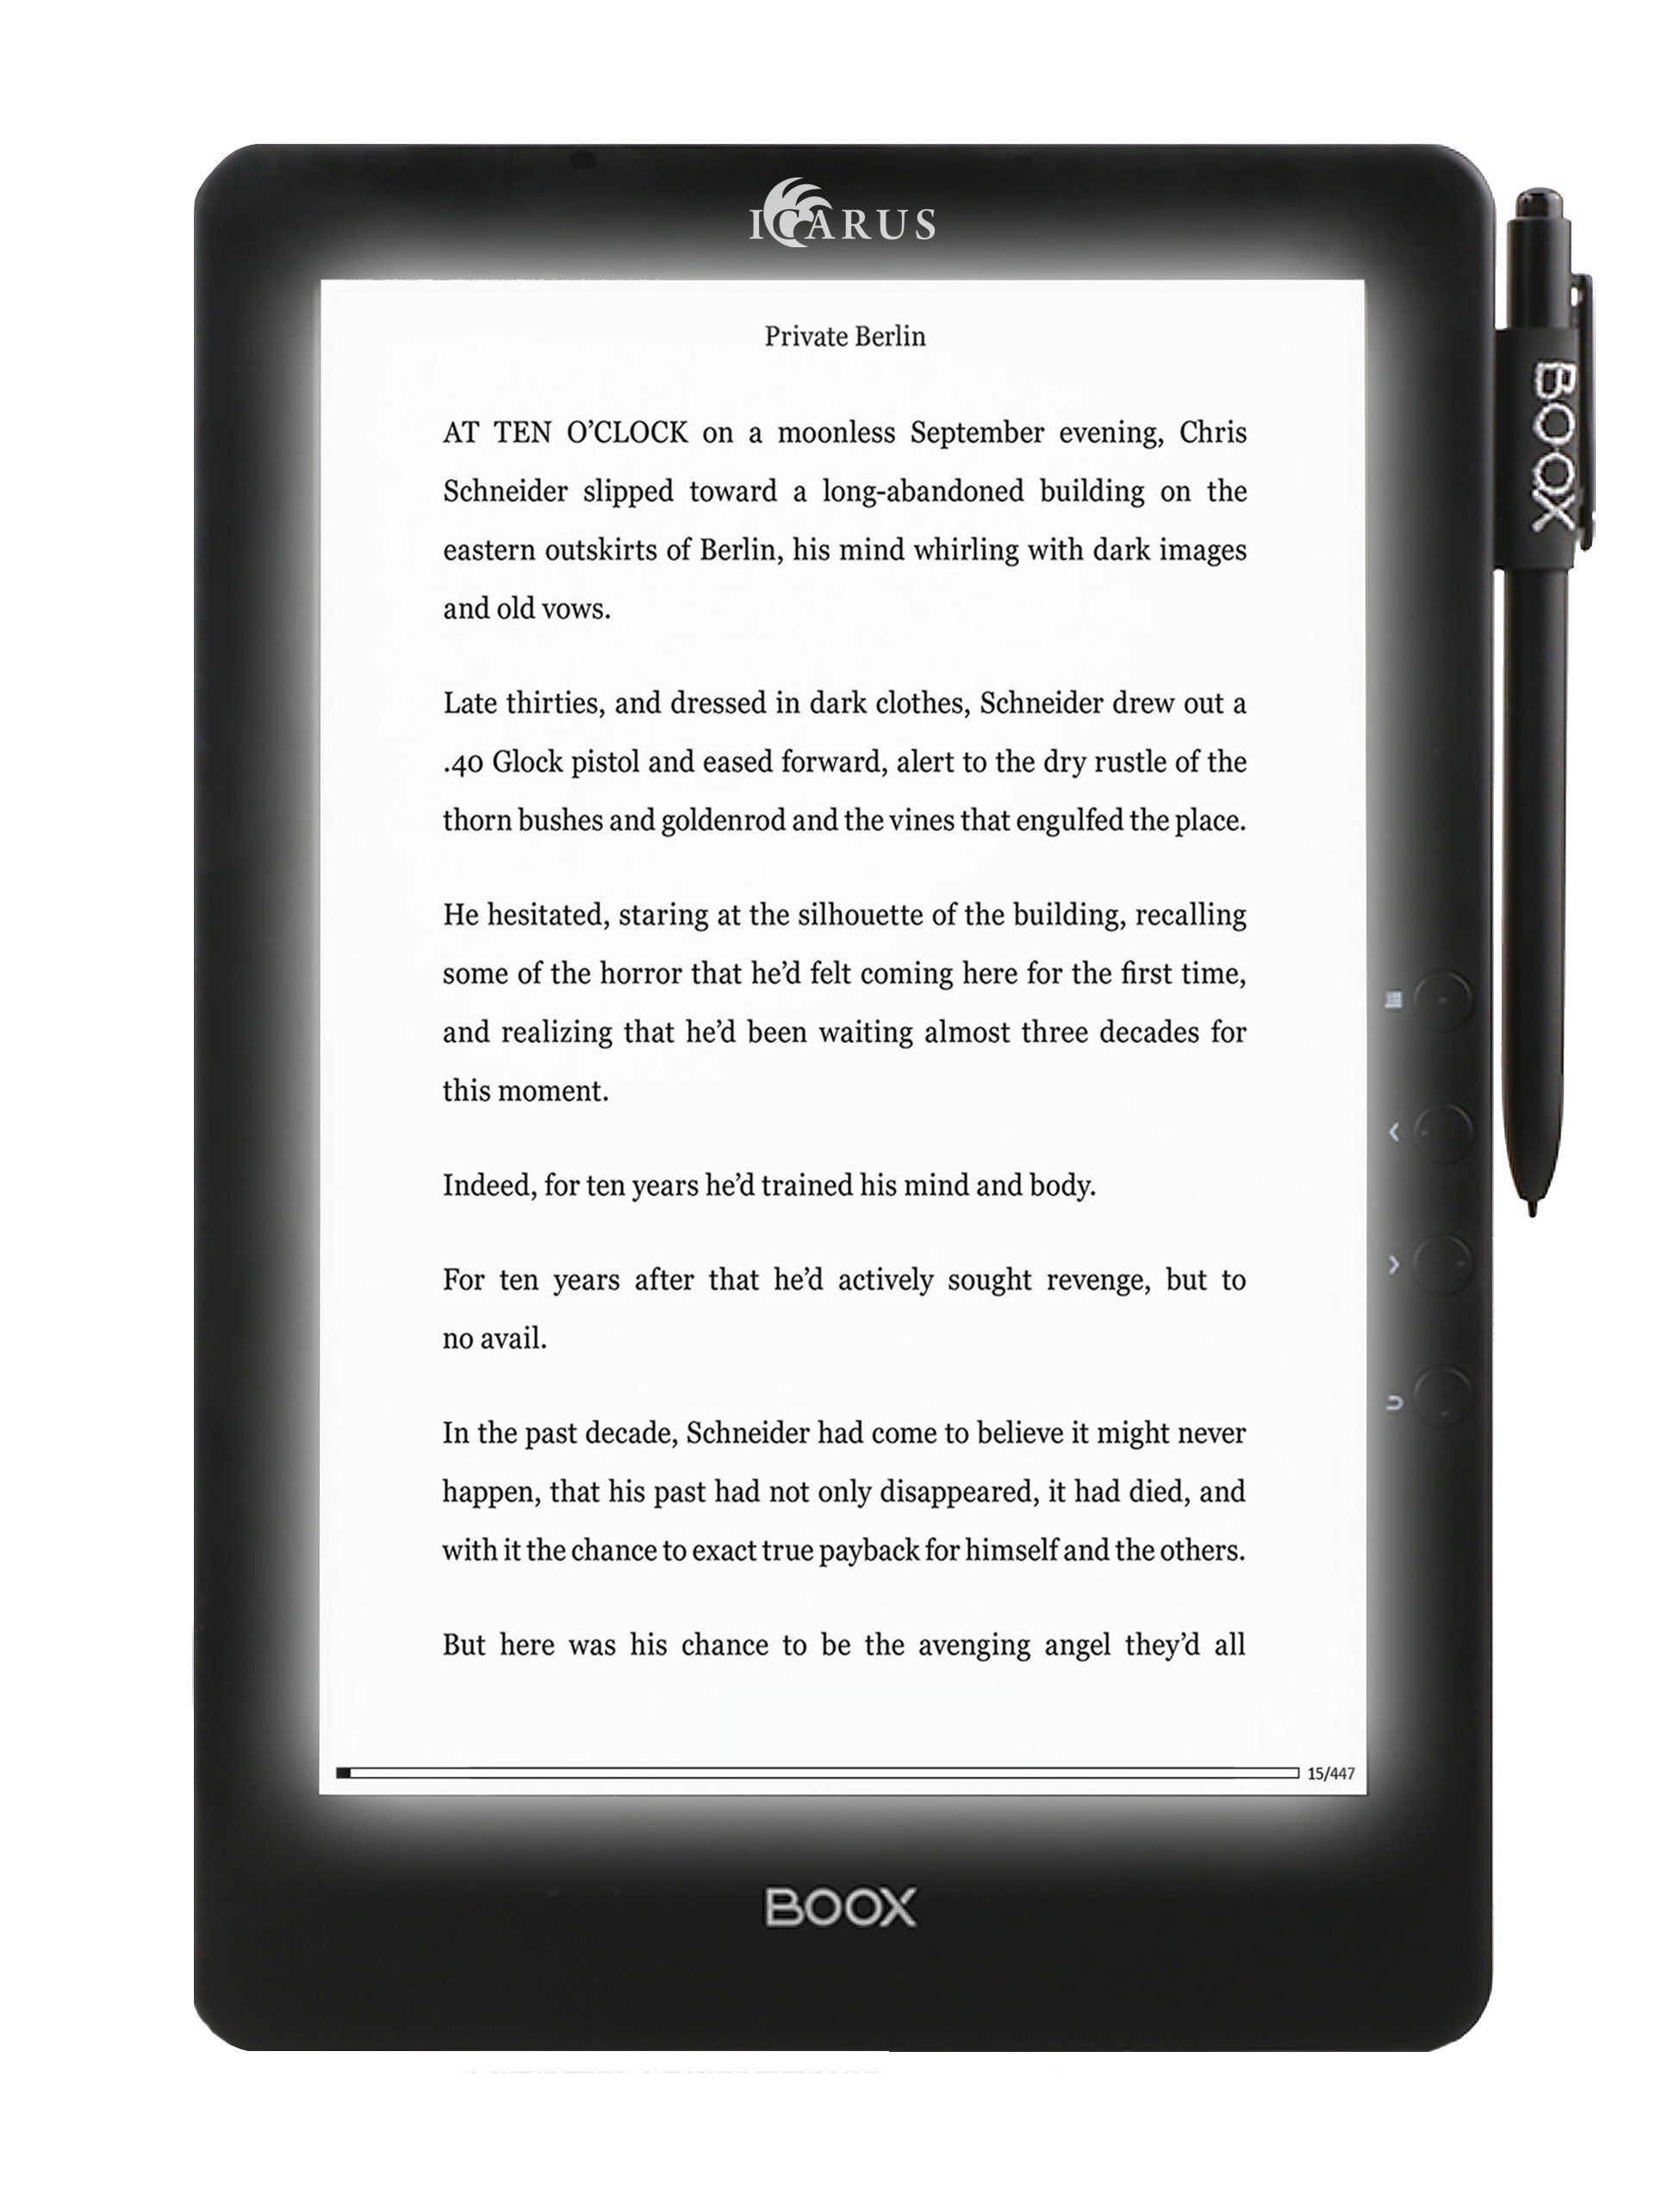 Icarus Illumina Pro E1053BK 9.7'' e-reader (Android 4.0) with touchscreen, handwriting and wifi